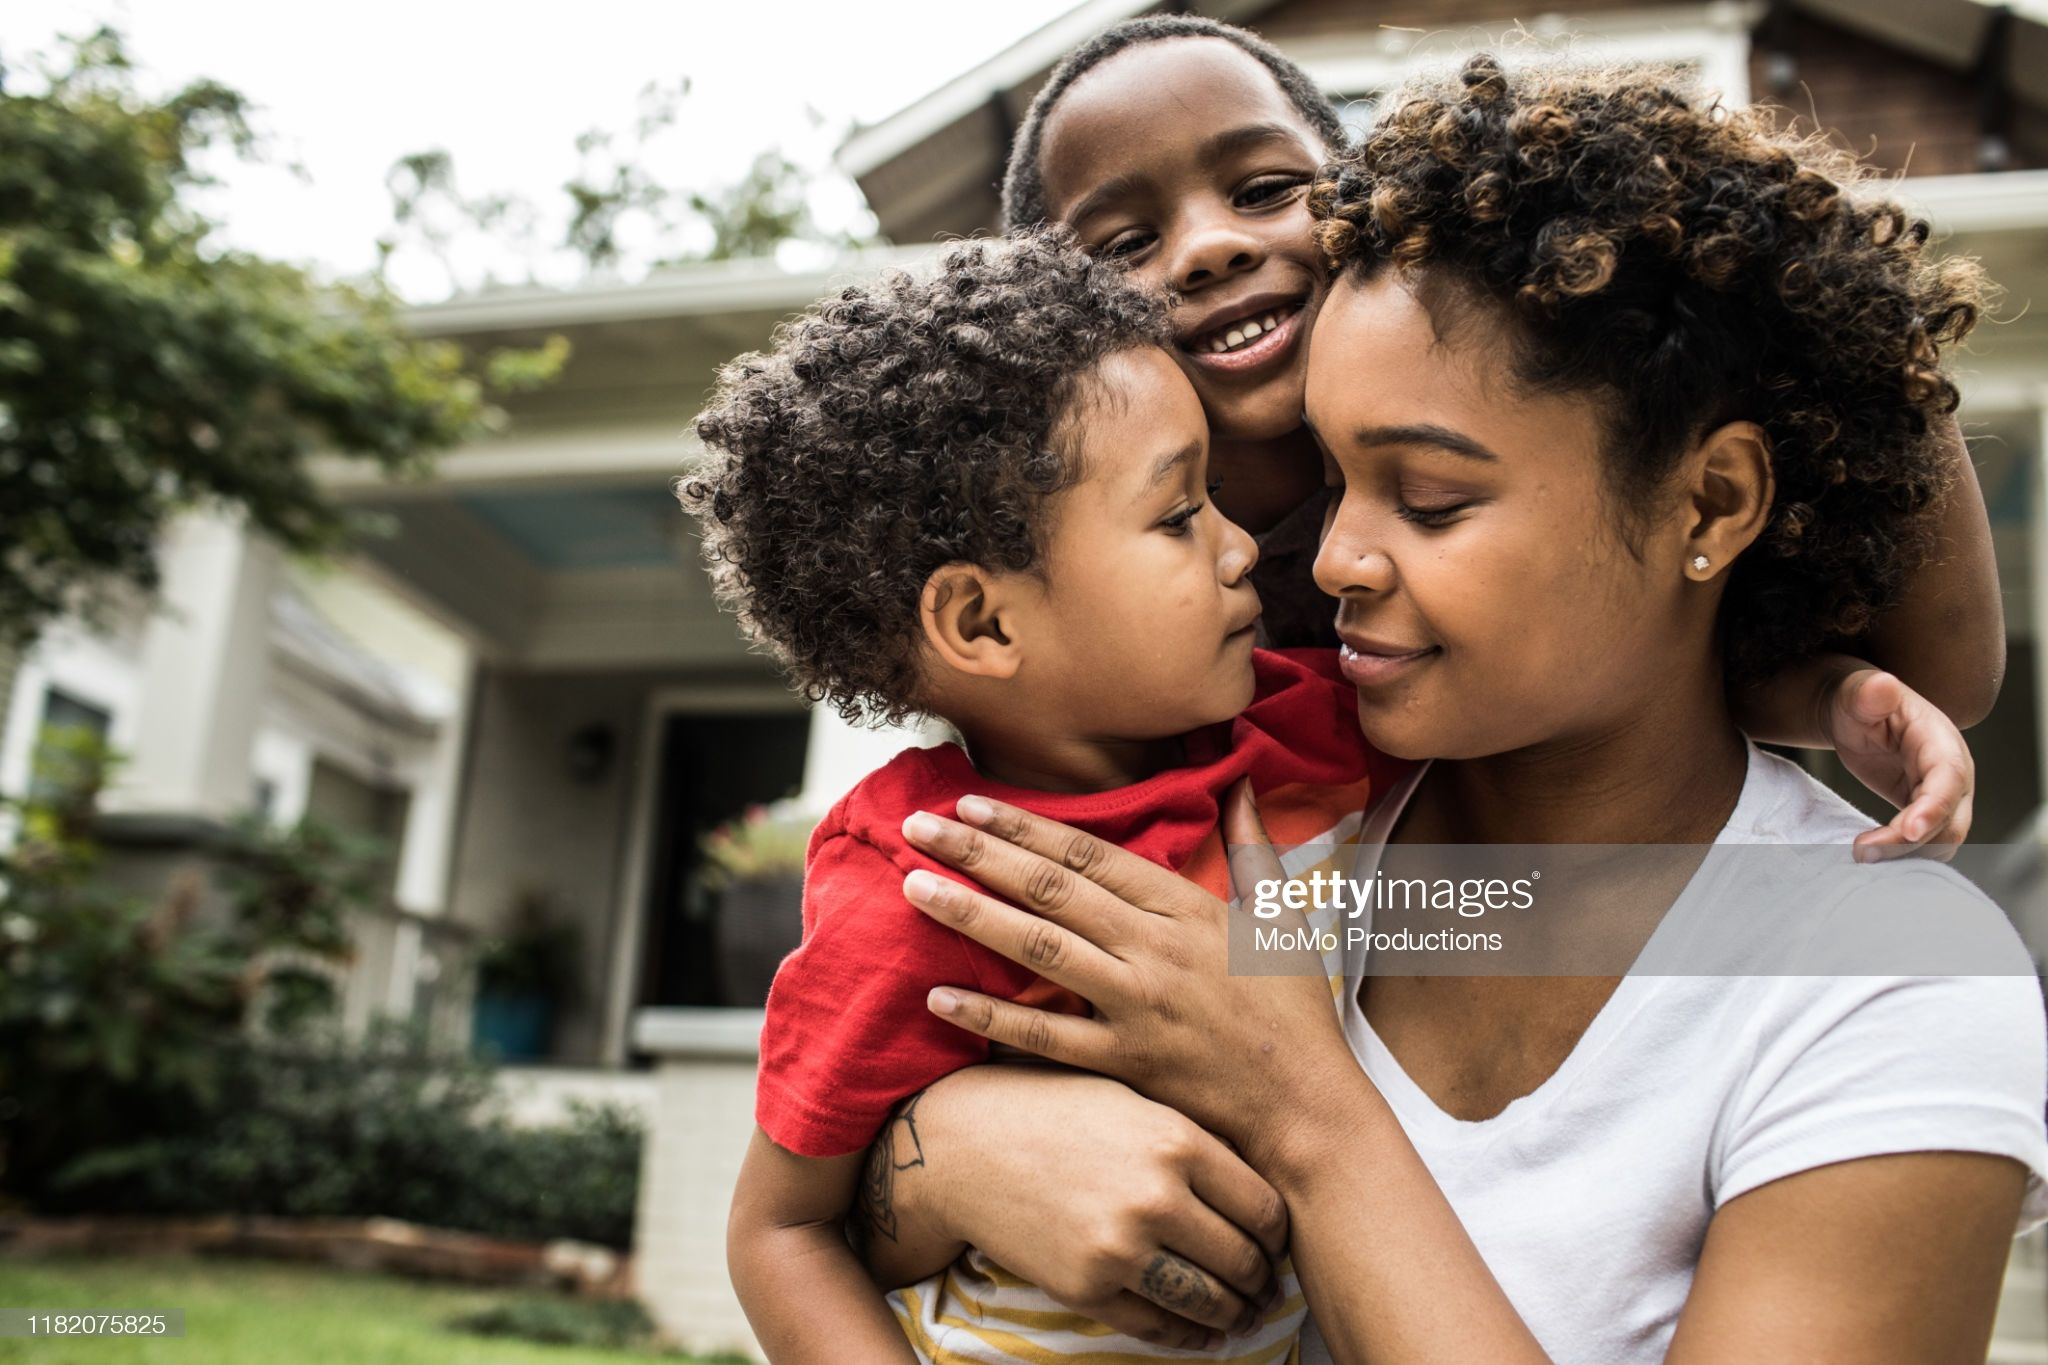 Single mother playing with young sons in front of house in